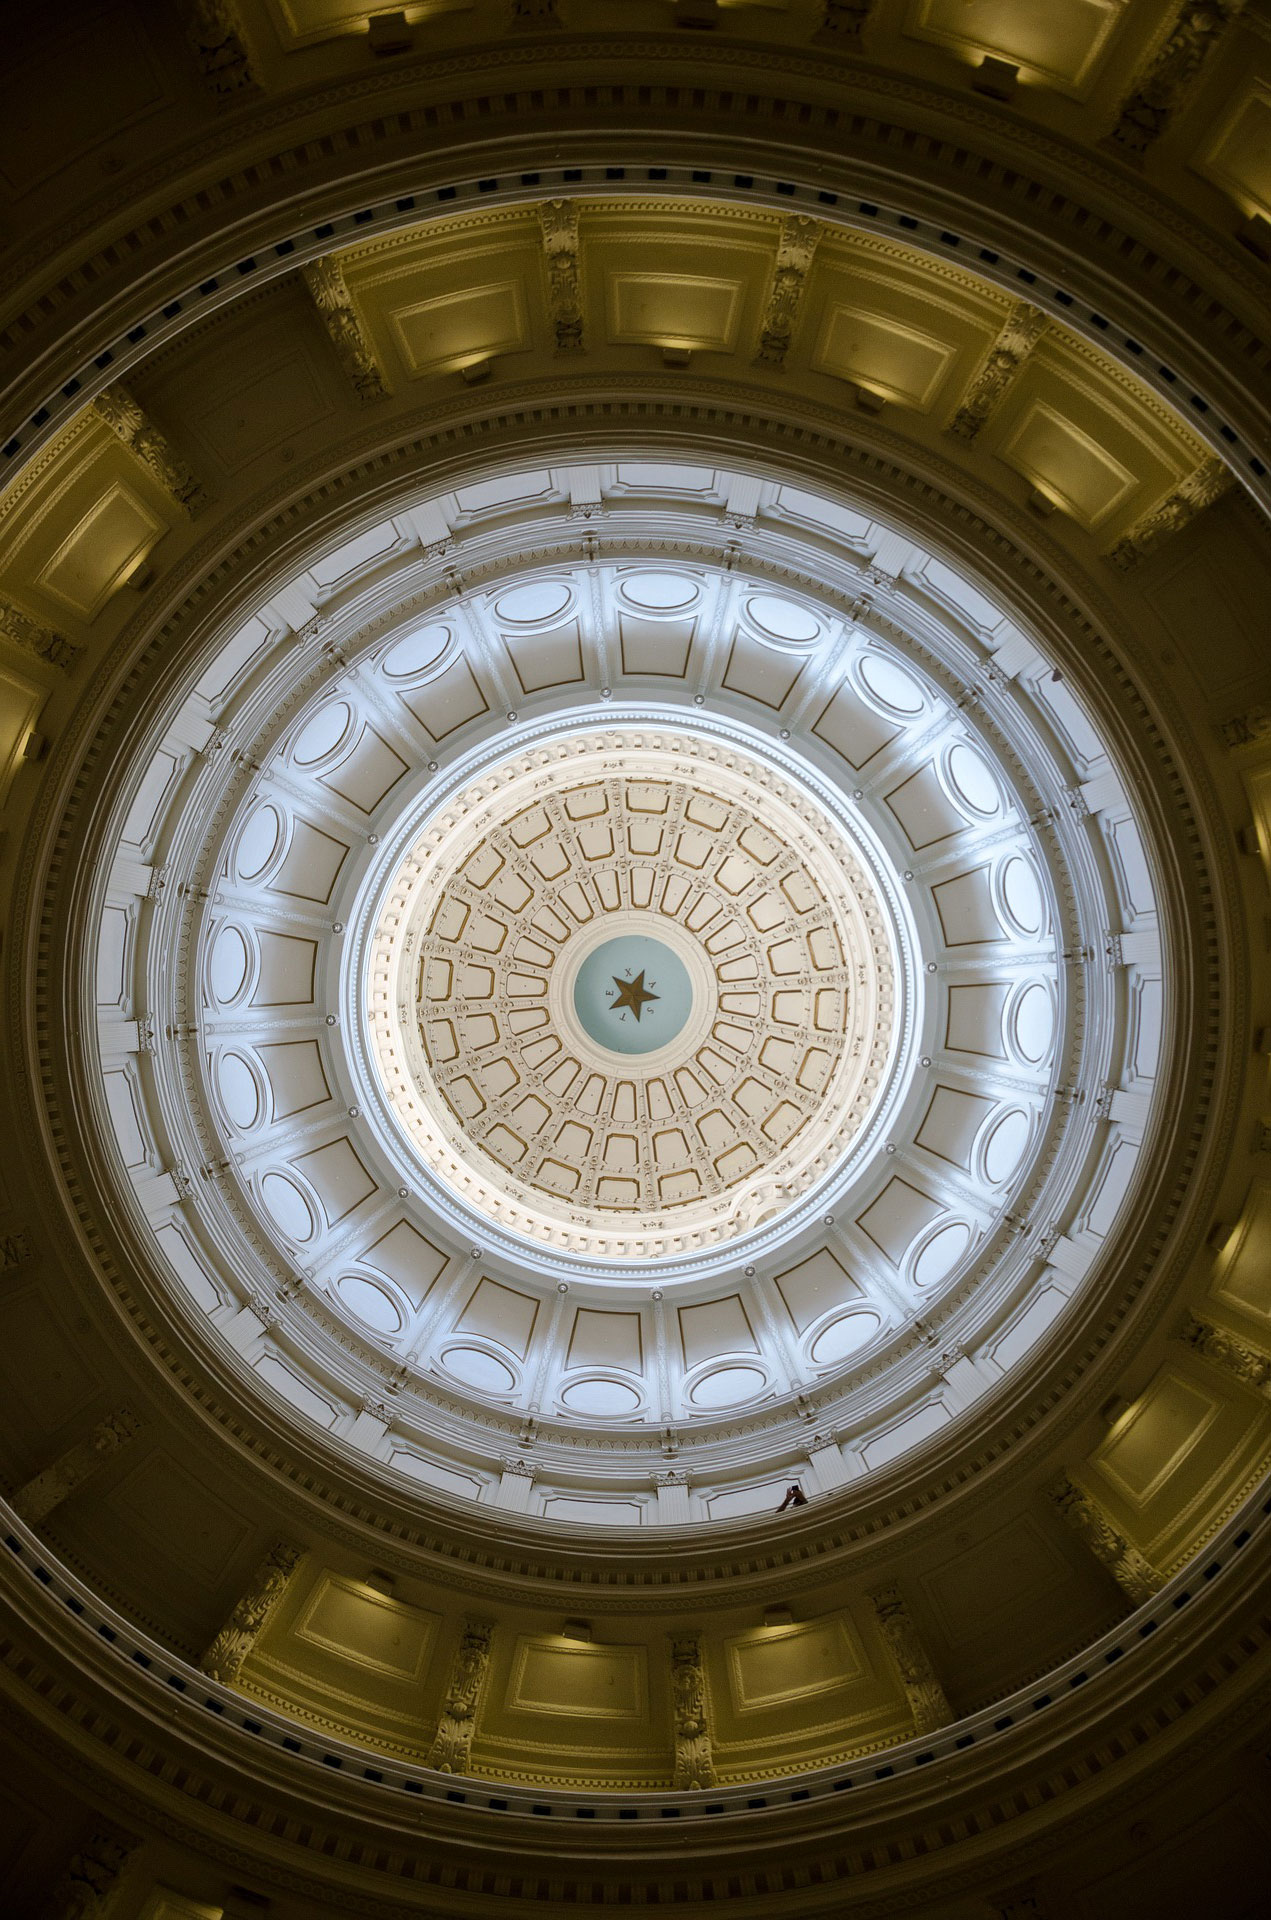 The Texas House Democratic Caucus Is An Official Caucus Of The Texas House  Of Representatives.